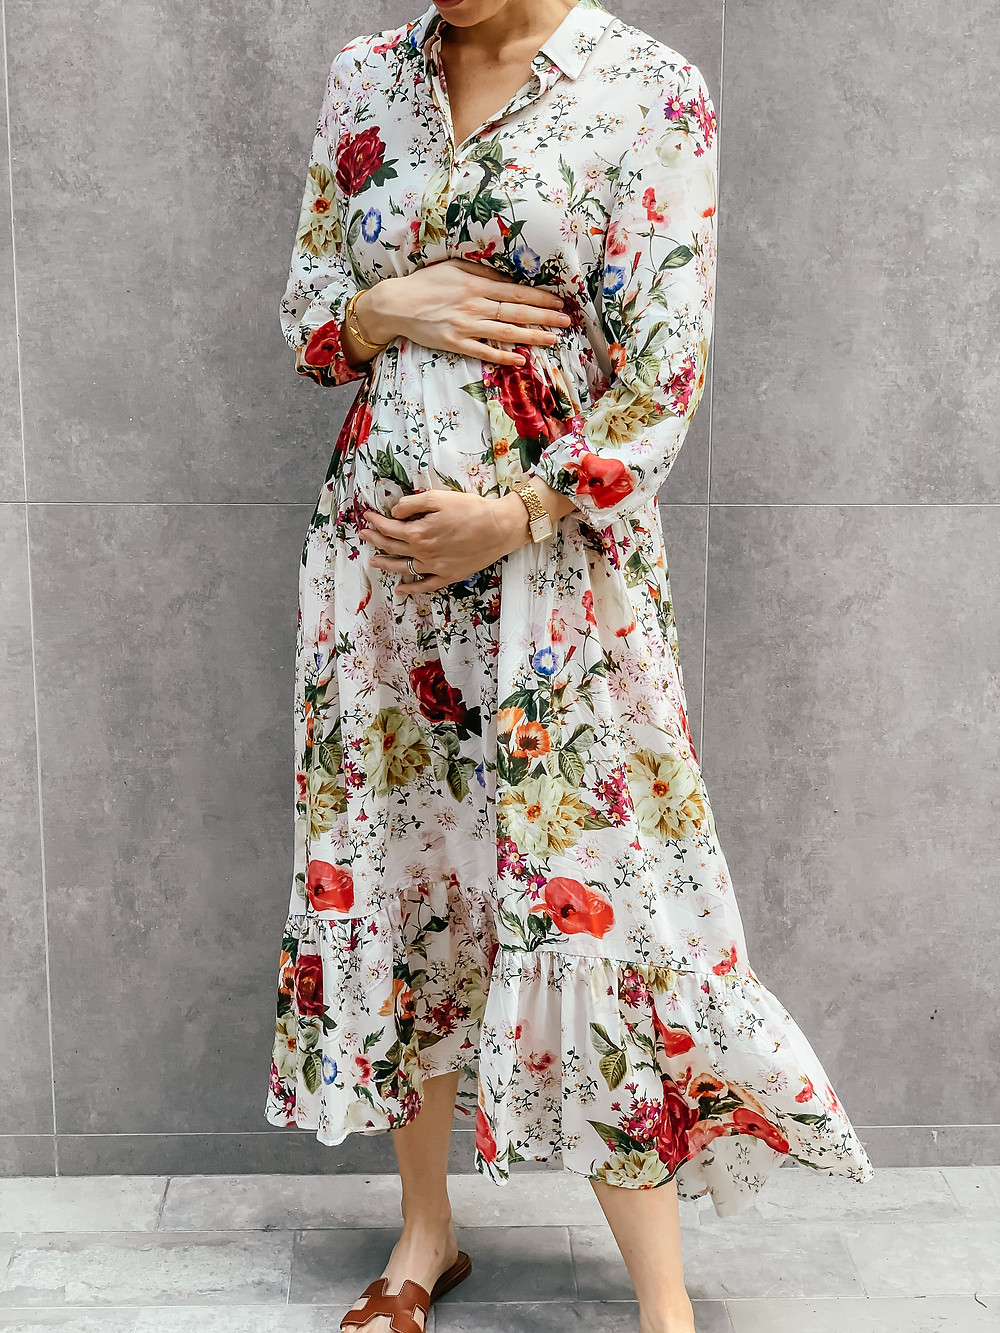 Liesl's Exciting Announcement | Pregnancy | A Style Alike